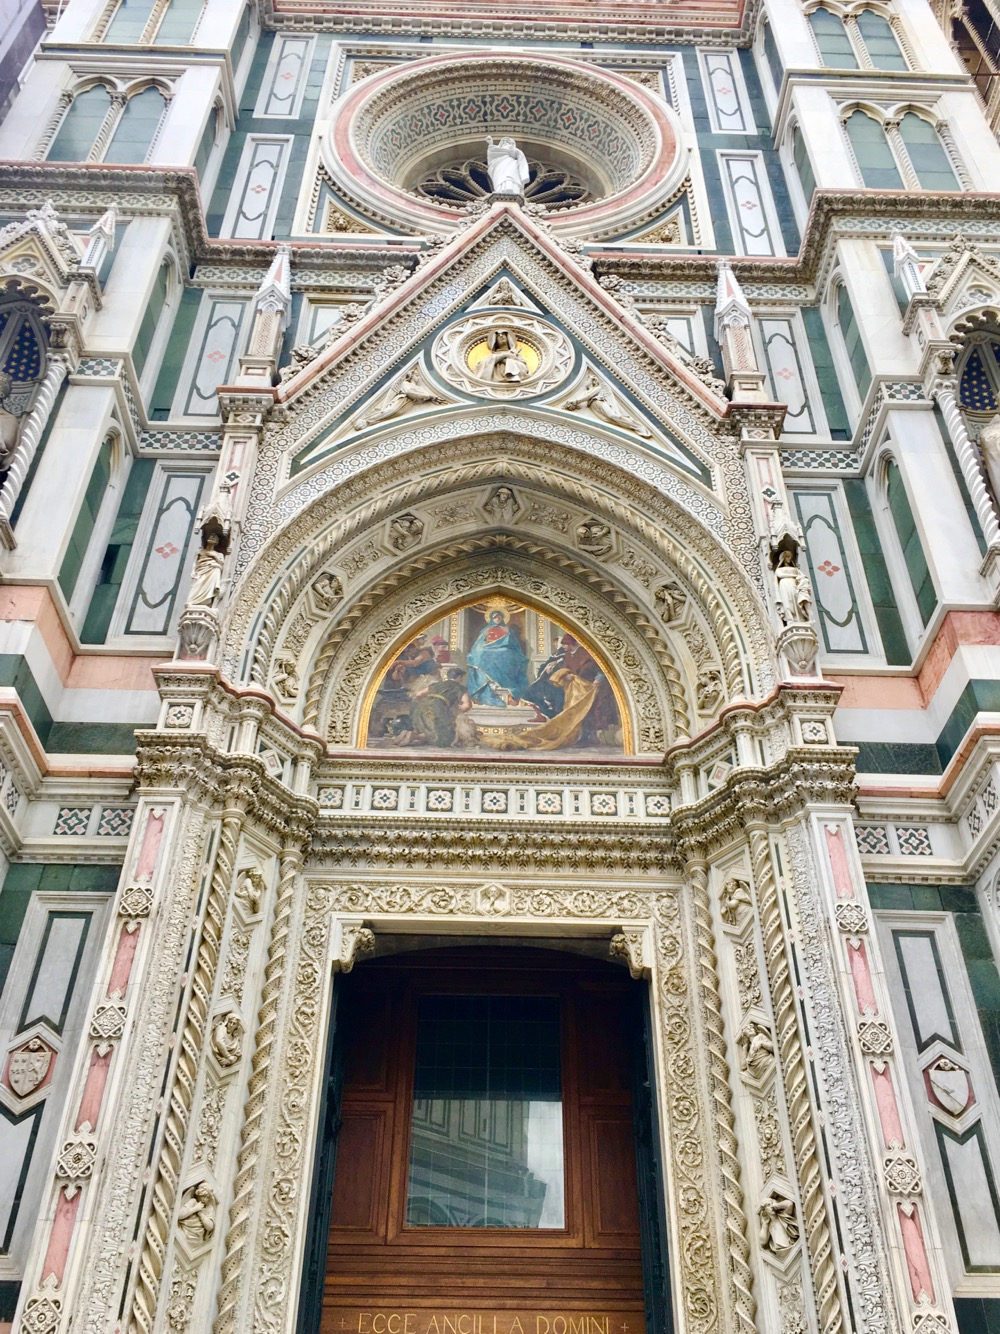 Florence's duomo is much more intricate on the outside than Sienna's.